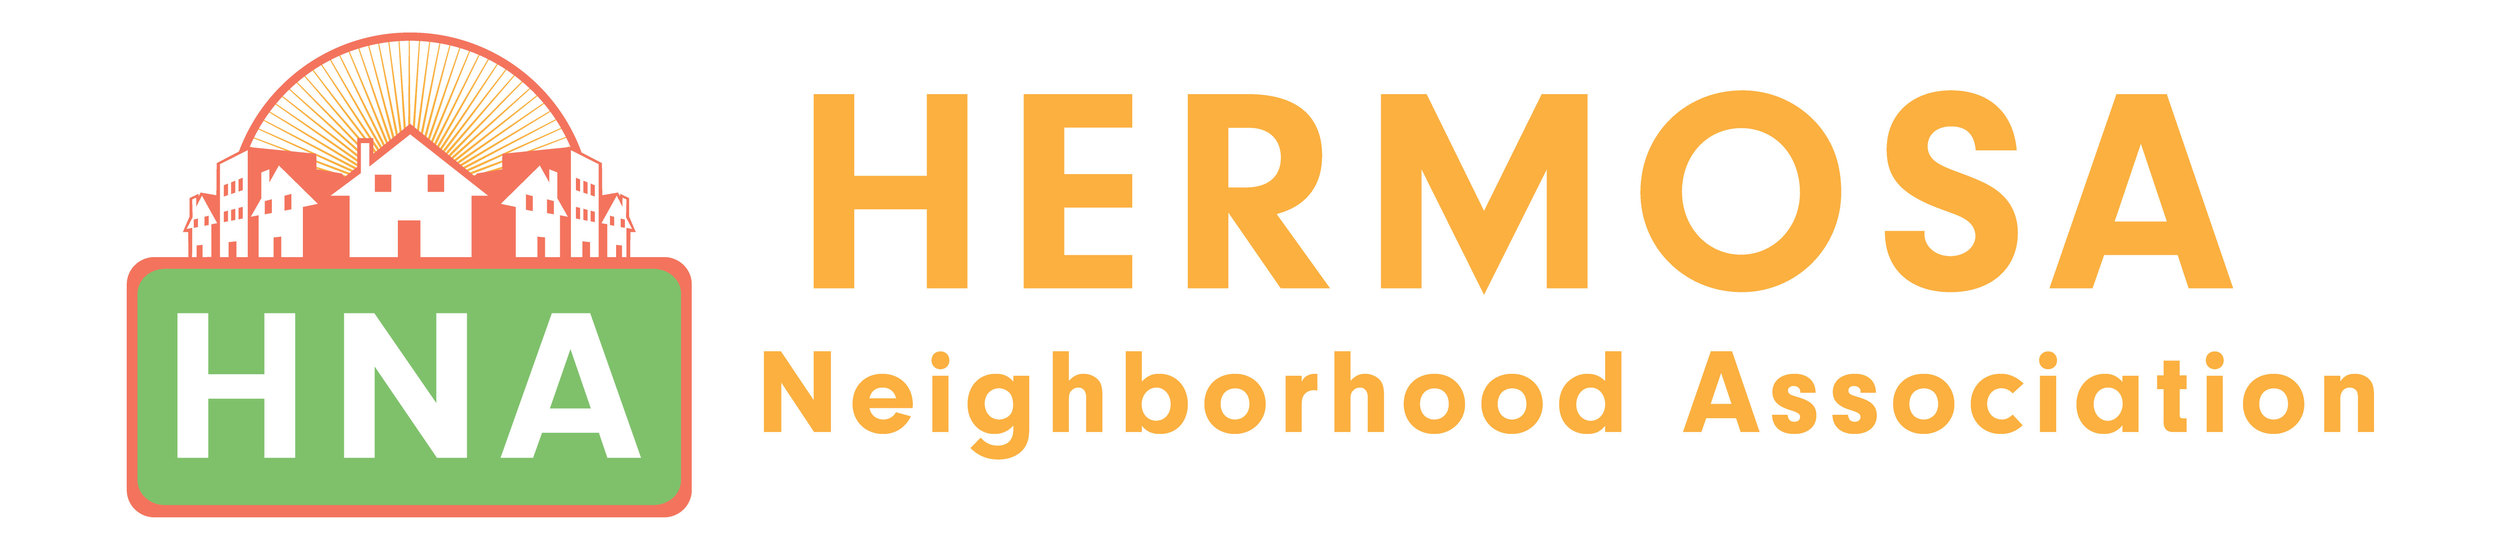 The Hermosa Neighborhood Association (HNA) was founded in the fall of 2014 by long term and new arrivals to the community who were looking to connect with neighbors. Since those early beginnings, HNA has grown tremendously both in terms of membership but also in its mission scope.